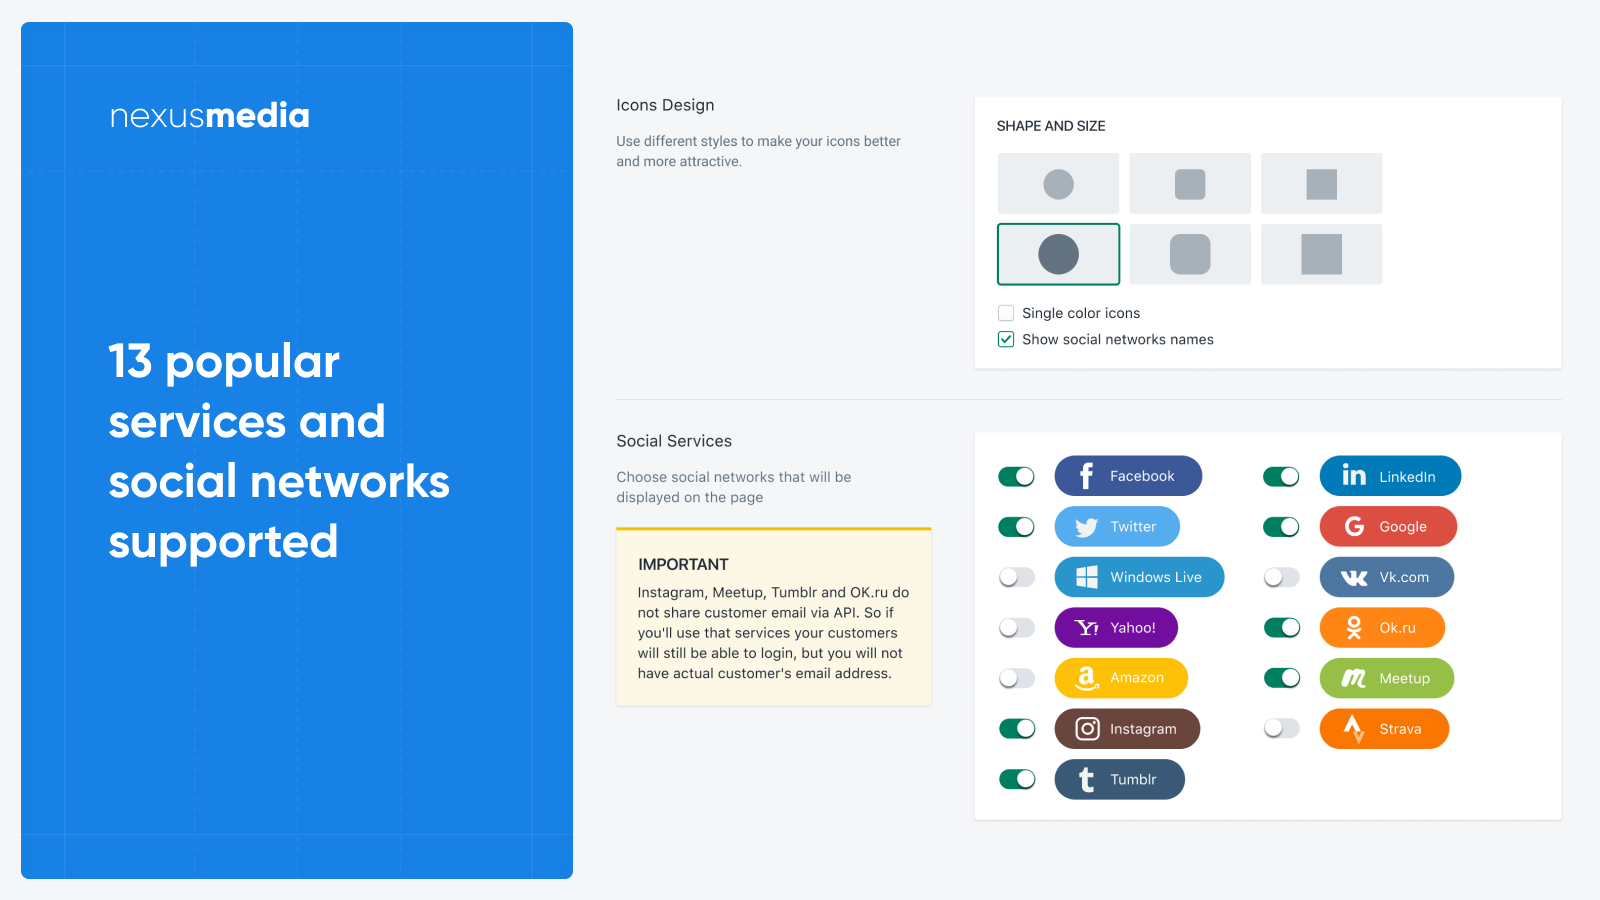 13 popular services and social networks supported